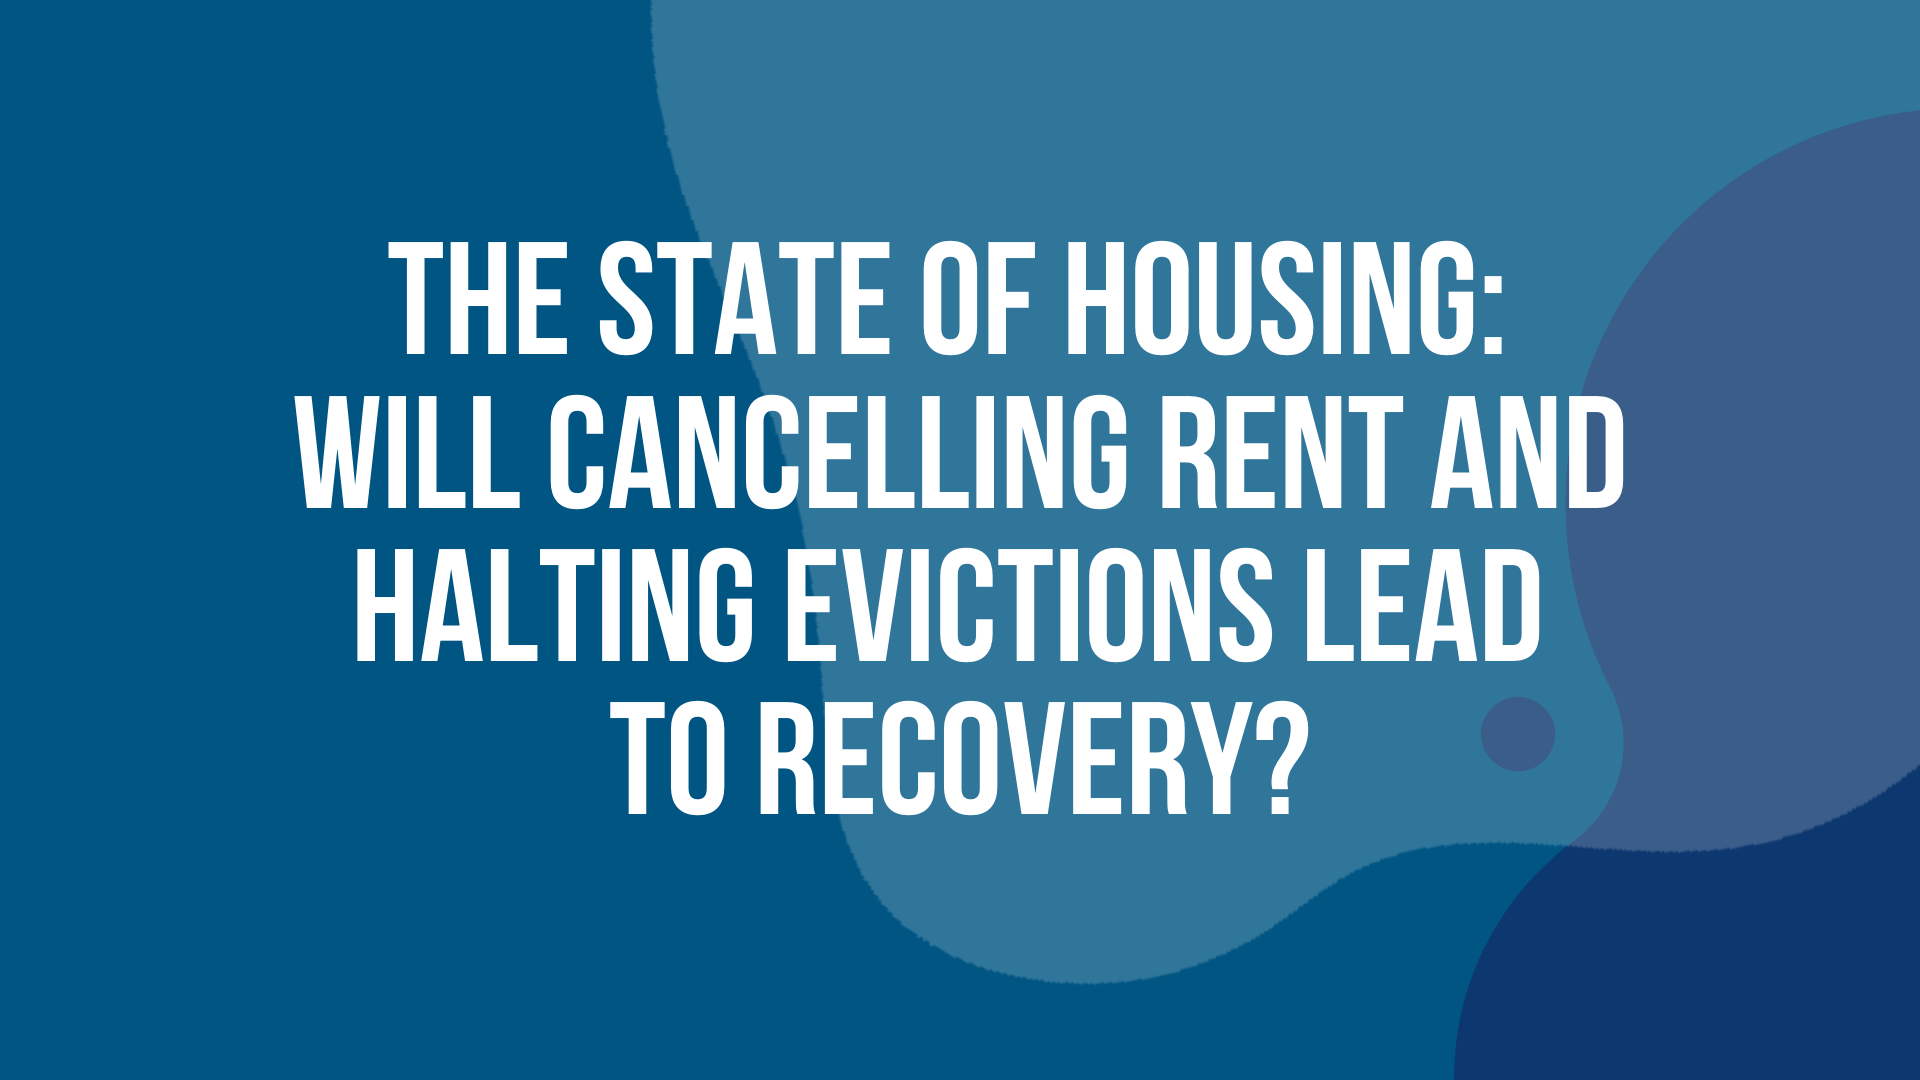 Will Cancelling Rent and Halting Evictions Lead to Recovery?